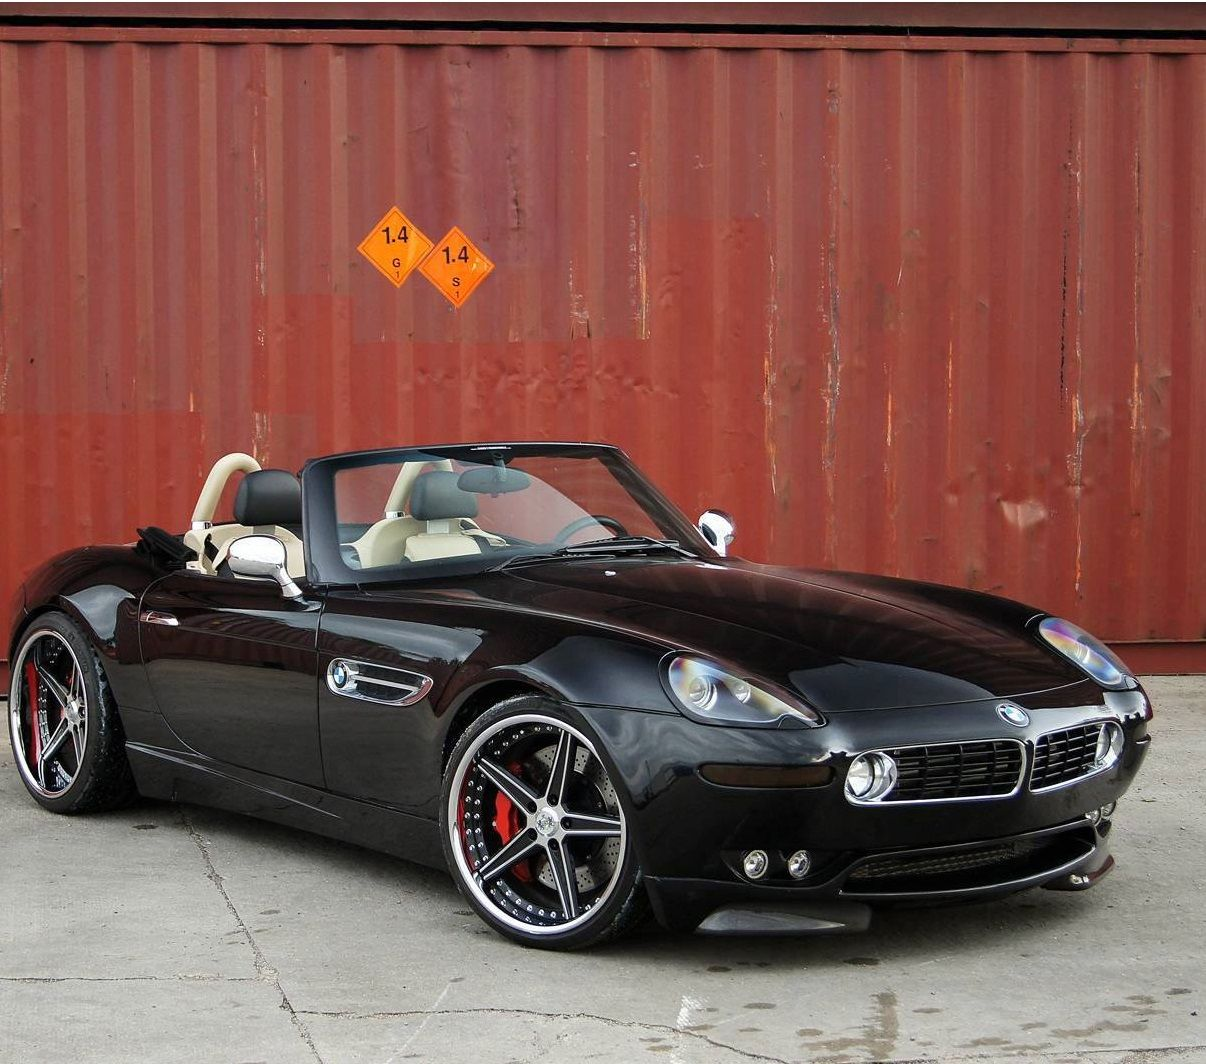 Bmw Z3 Classic Car: BMW Z8 G-Power 888 HP Bi-Supercharged.